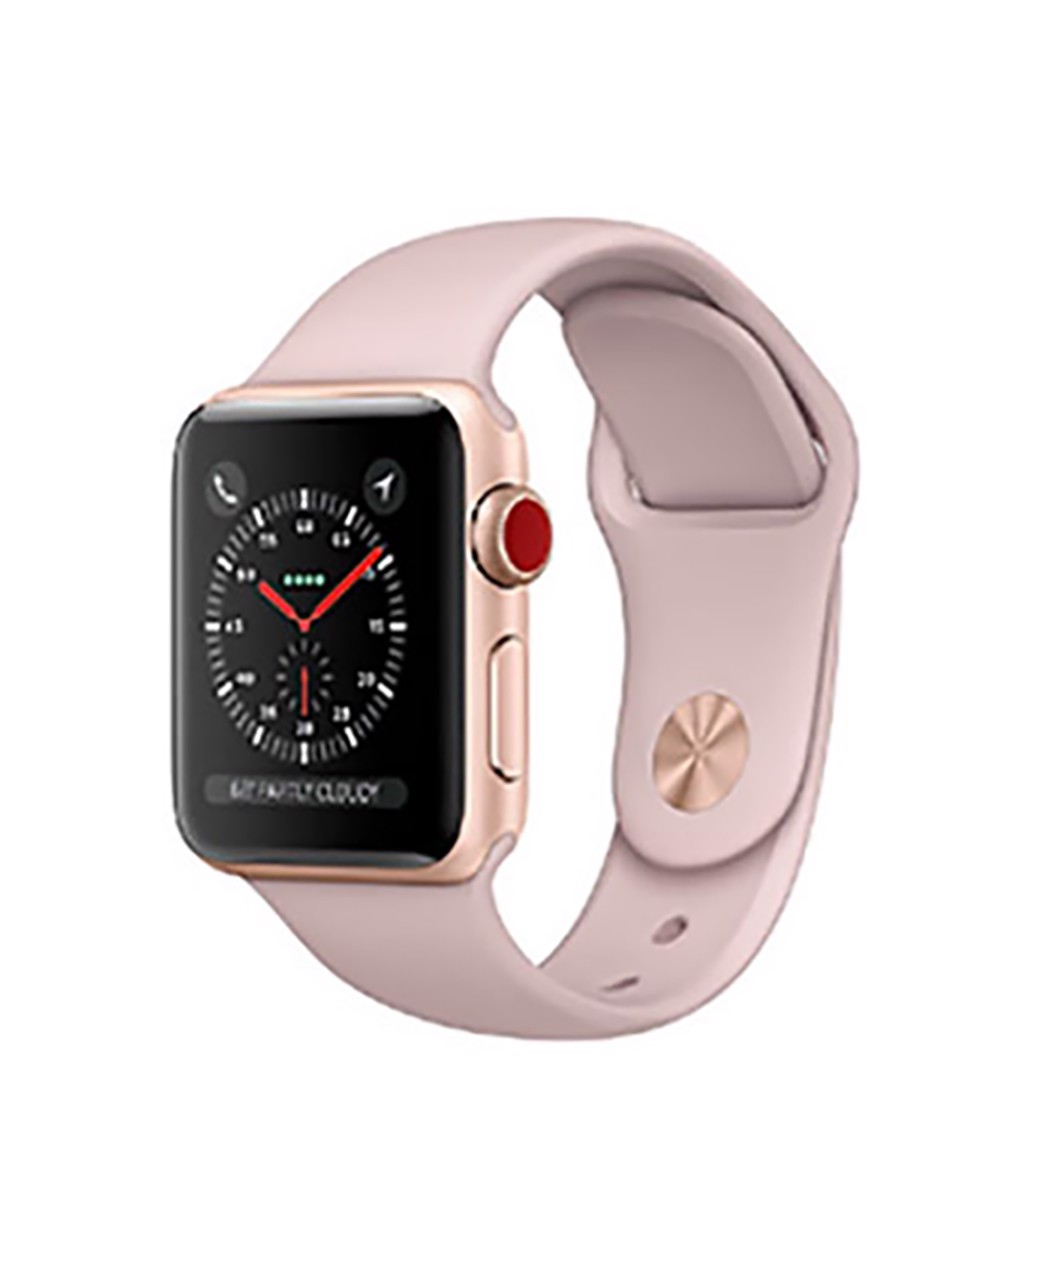 Apple Watch Series 3 - 38mm GPS + Cellular 4G/LTE